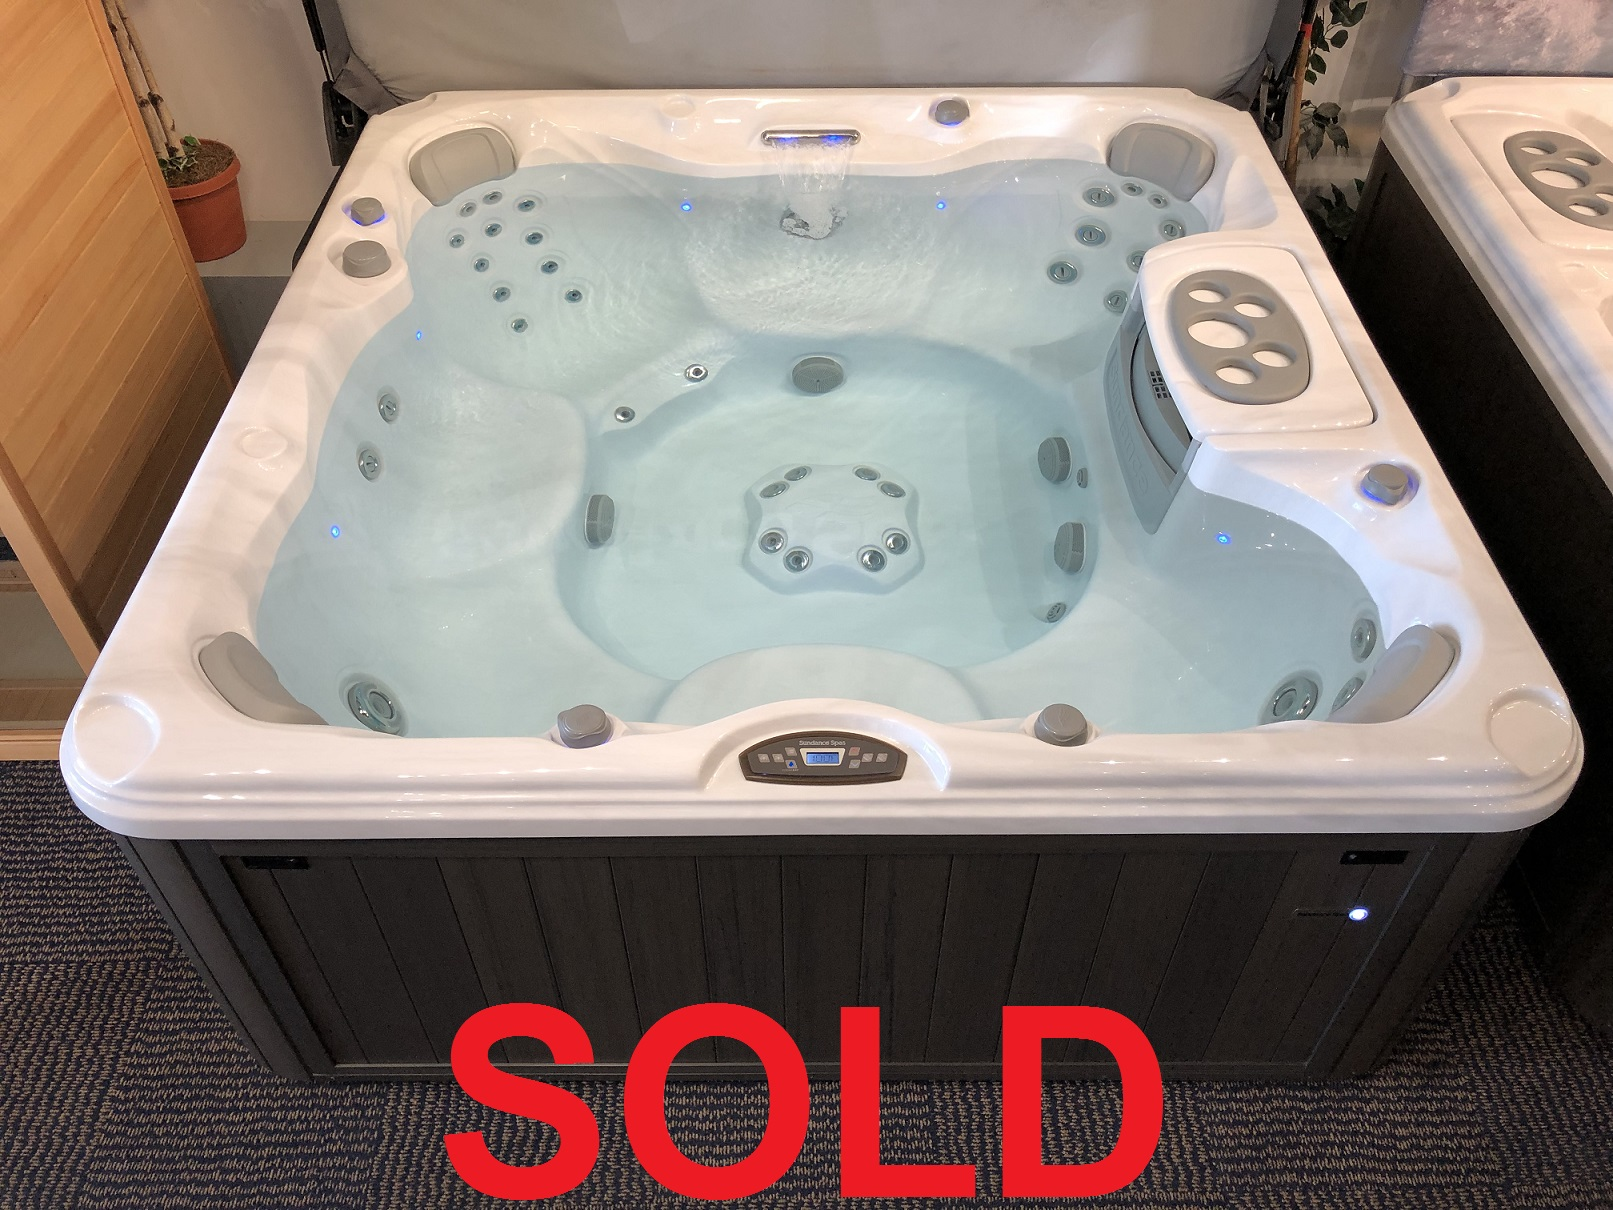 Sundance Spas Chelsee 7 person hot tub spa whirlpool sale hot tubs specials sales near me Burlington Ontario